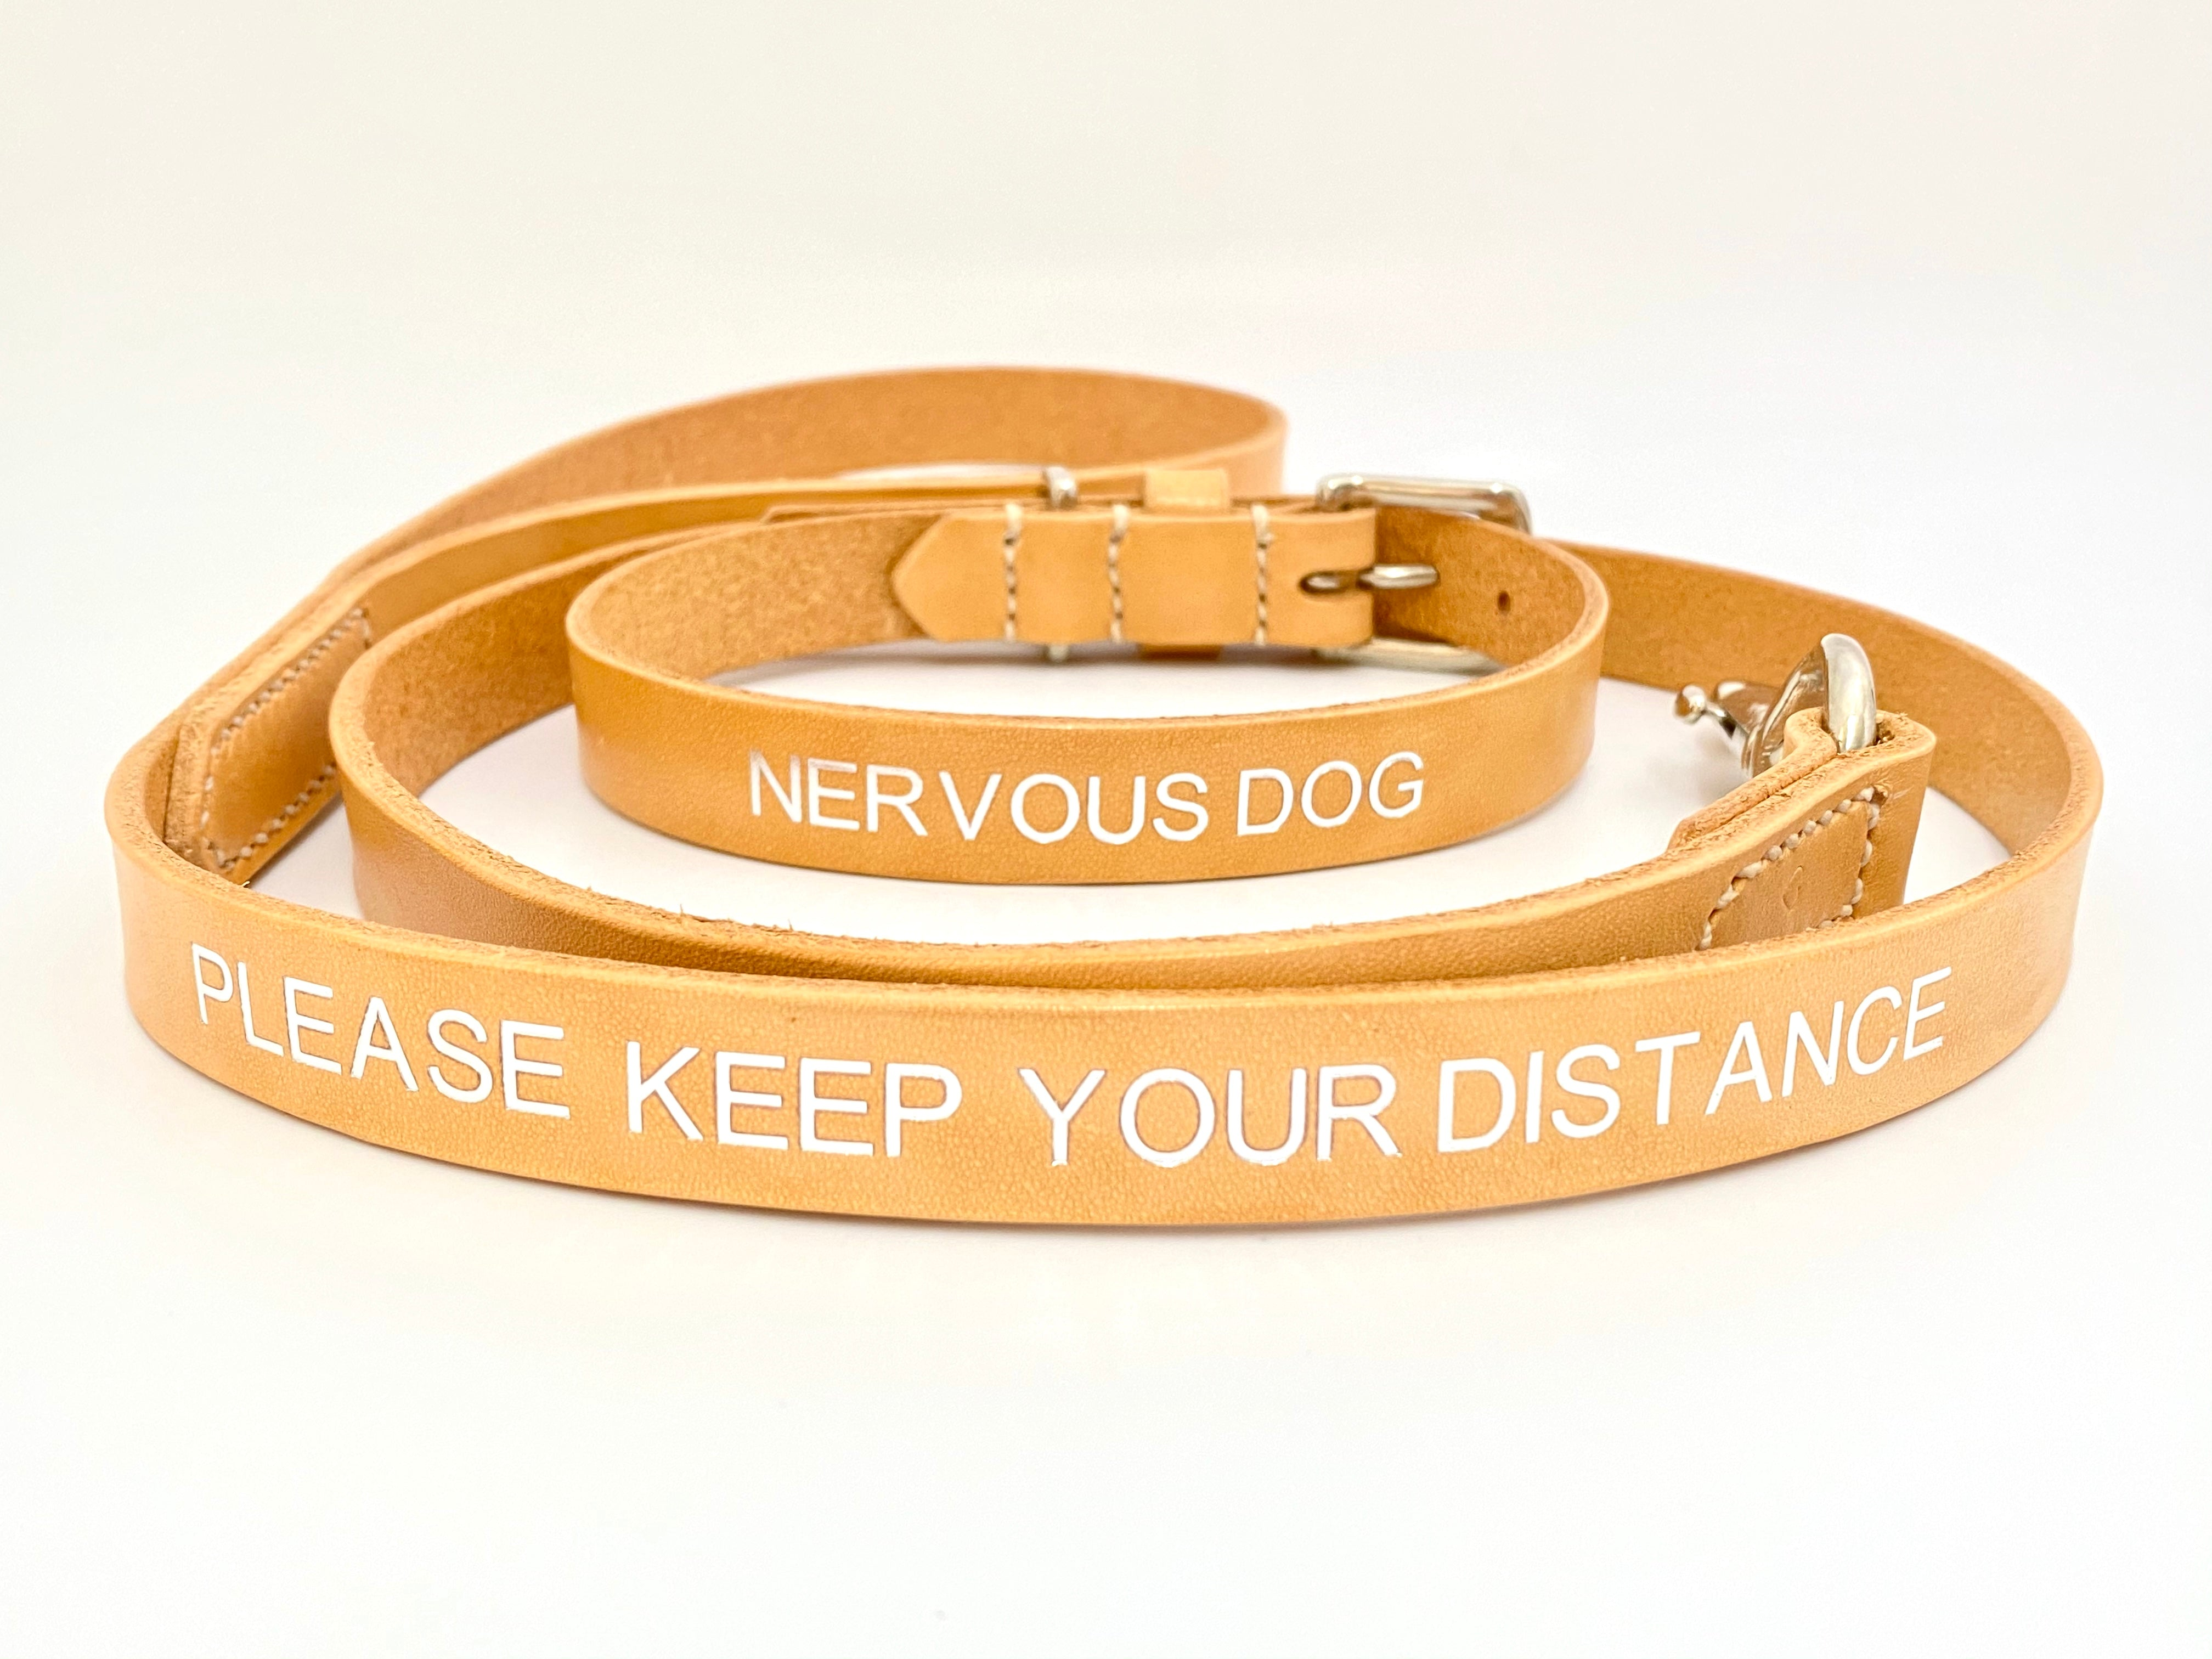 nervous dog collar and lead set